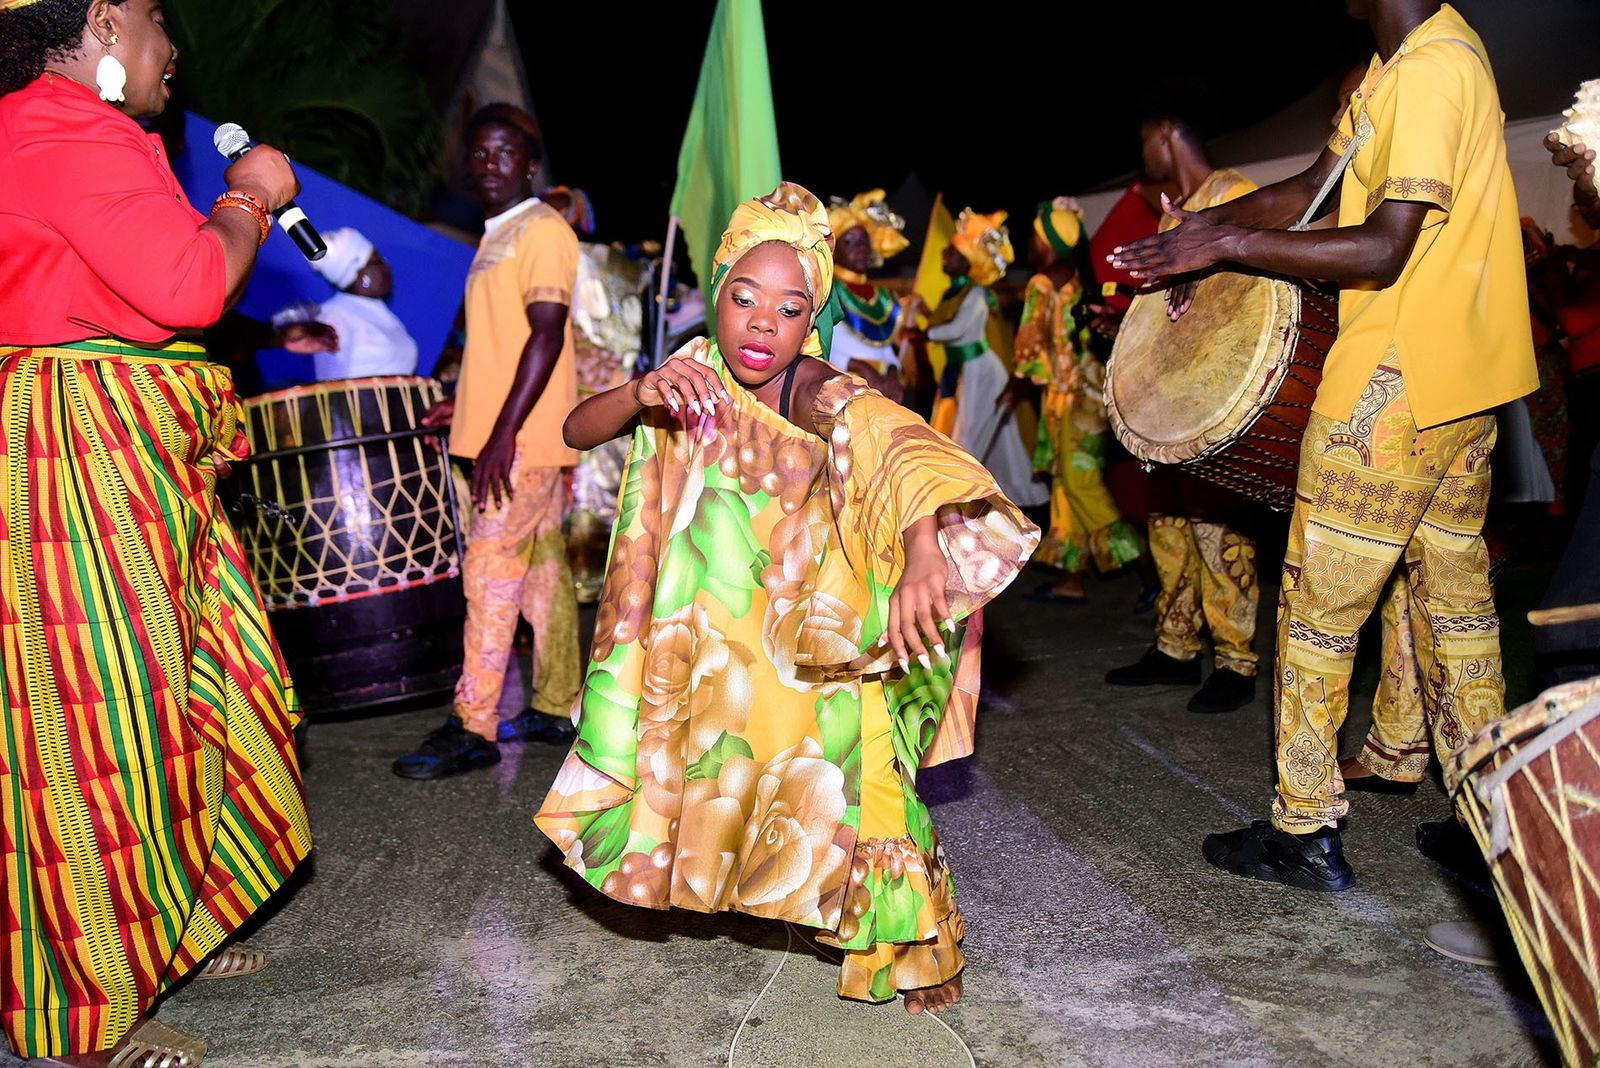 Carnival sees January and February filled with fêtes (parties), calypso shows and soca concerts that culminate ...